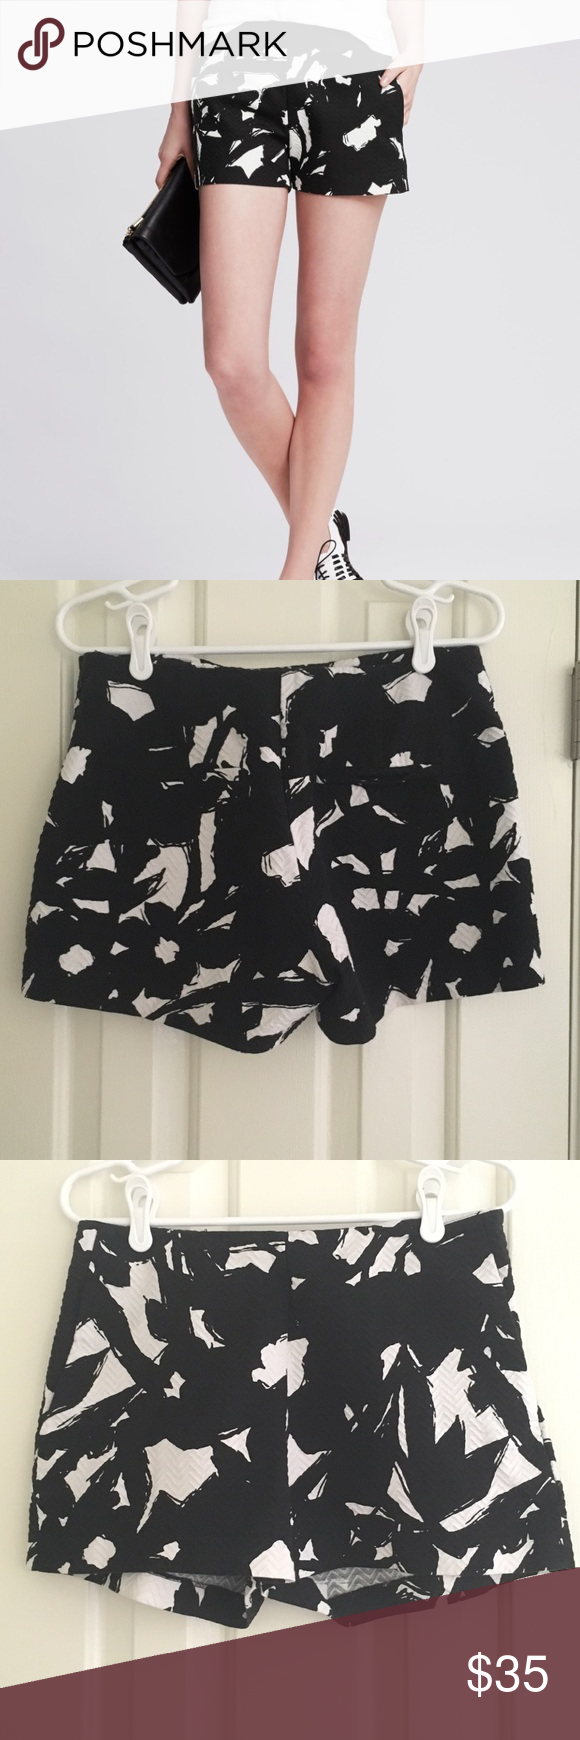 Banana Republic Floral Jacquard Short | Black | 10 Like new and comes from a smoke free home!! Description: Zip fly with hook-and-bar closure. Front off-seam pockets. Rear welt pockets. 100% Cotton. Dry clean. Color: Black Banana Republic Shorts